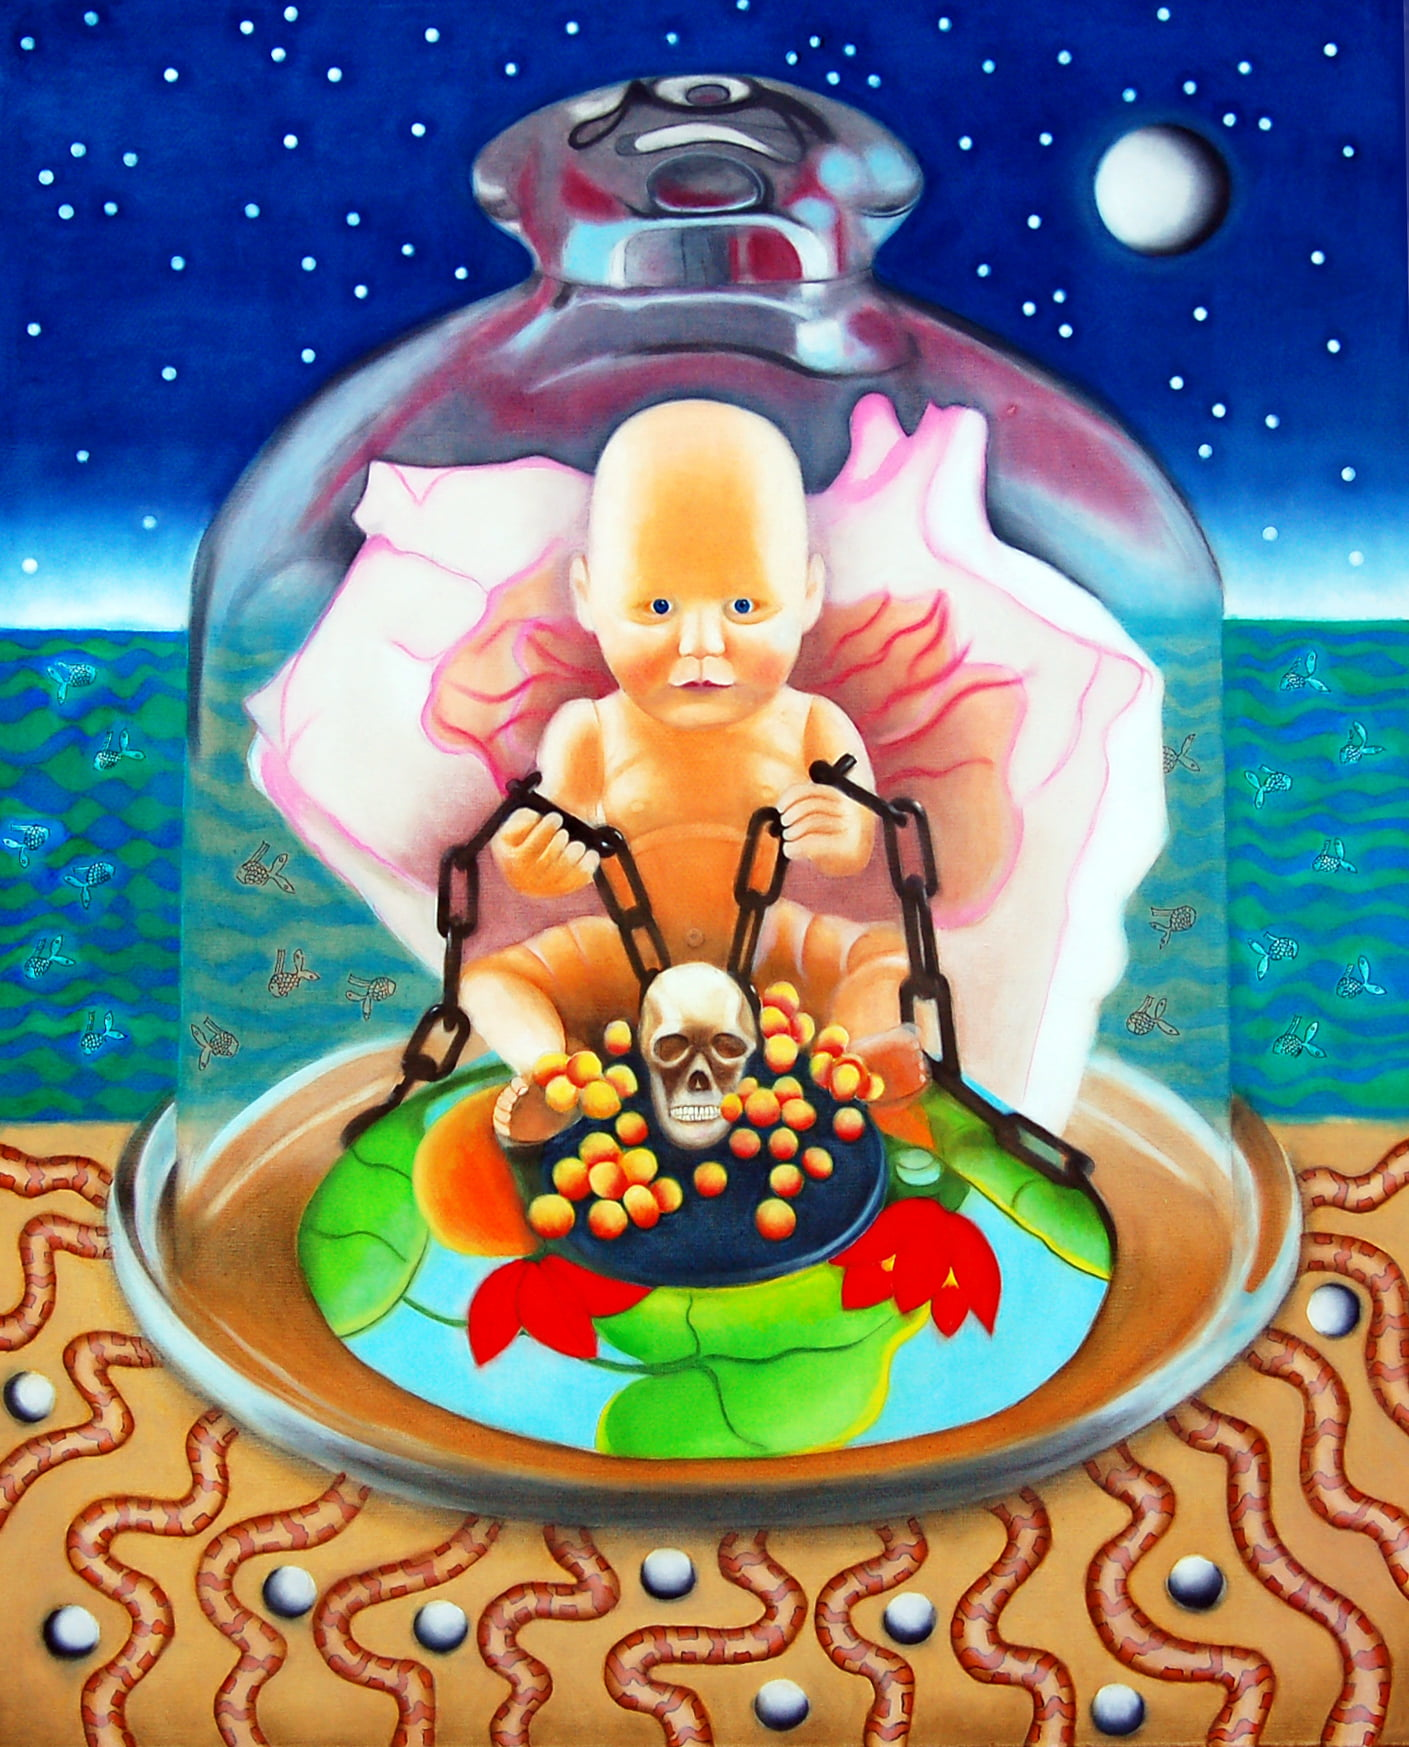 A brightly coloured portrait painting that has a large bell jar in the centre. A baby sits inside the bell jar holding onto a chain. Behind the jar is a blue sea and starry sky covered in intricate patterns.